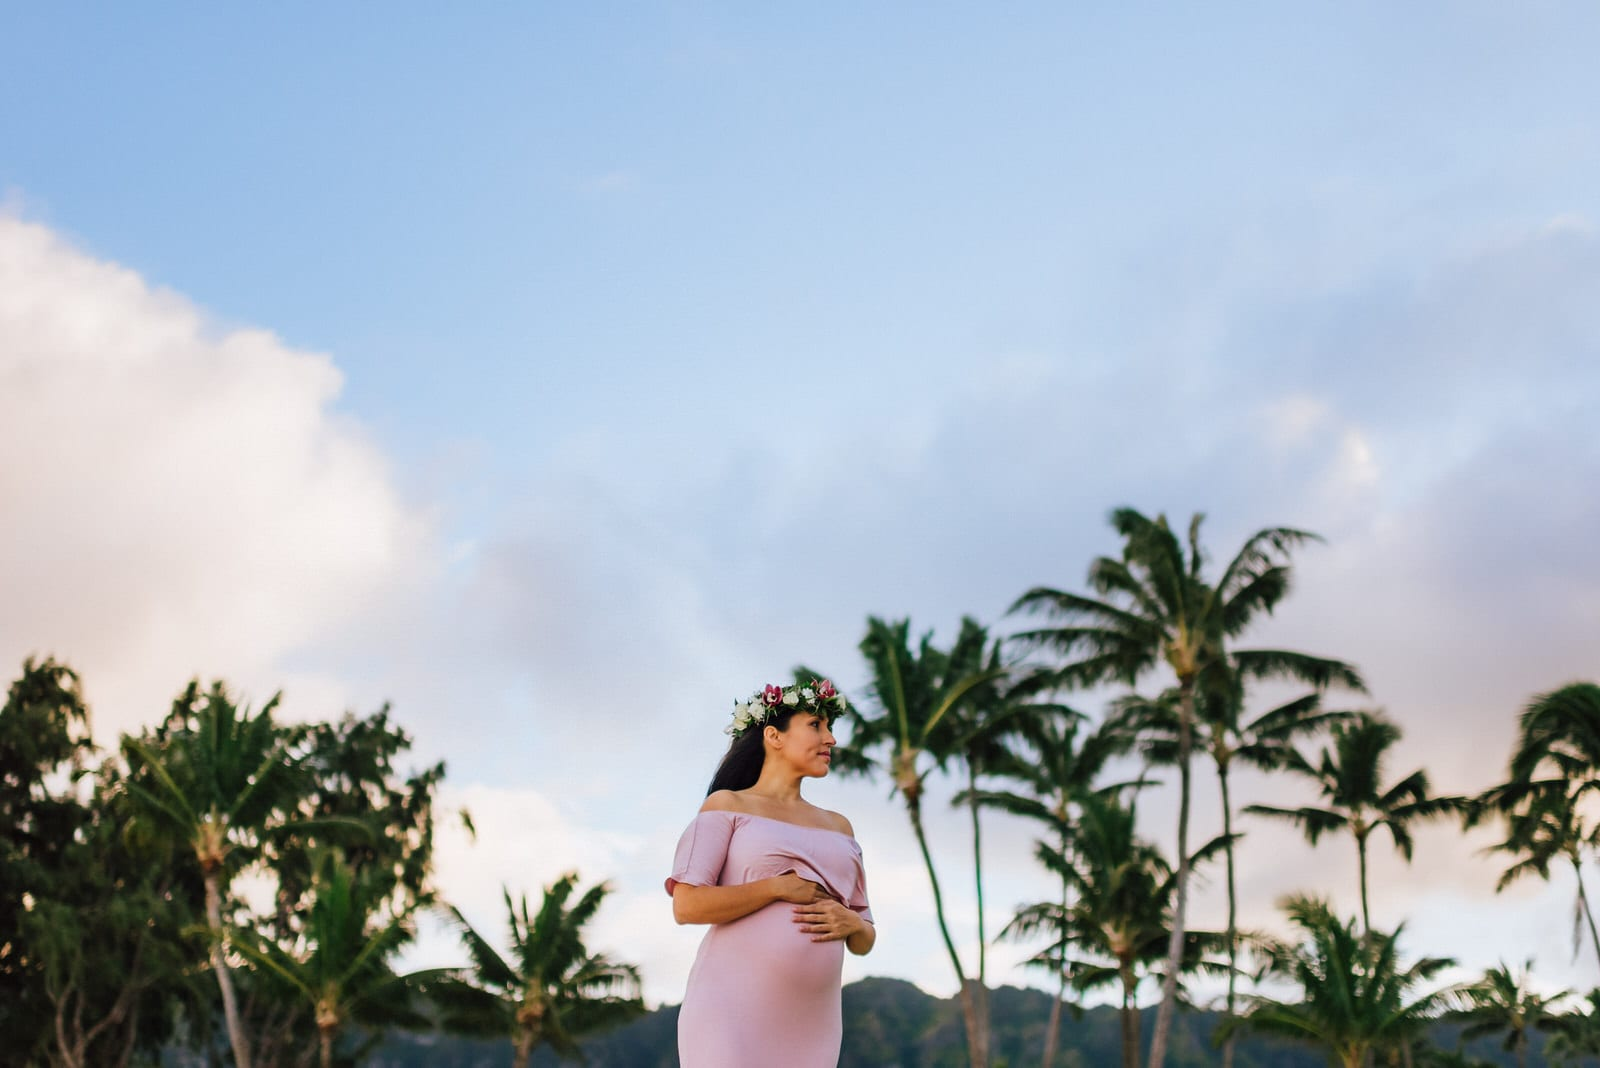 Oahu-Maternity-Photographer-Love-Haku-Flower-Crown-Water-10.jpg